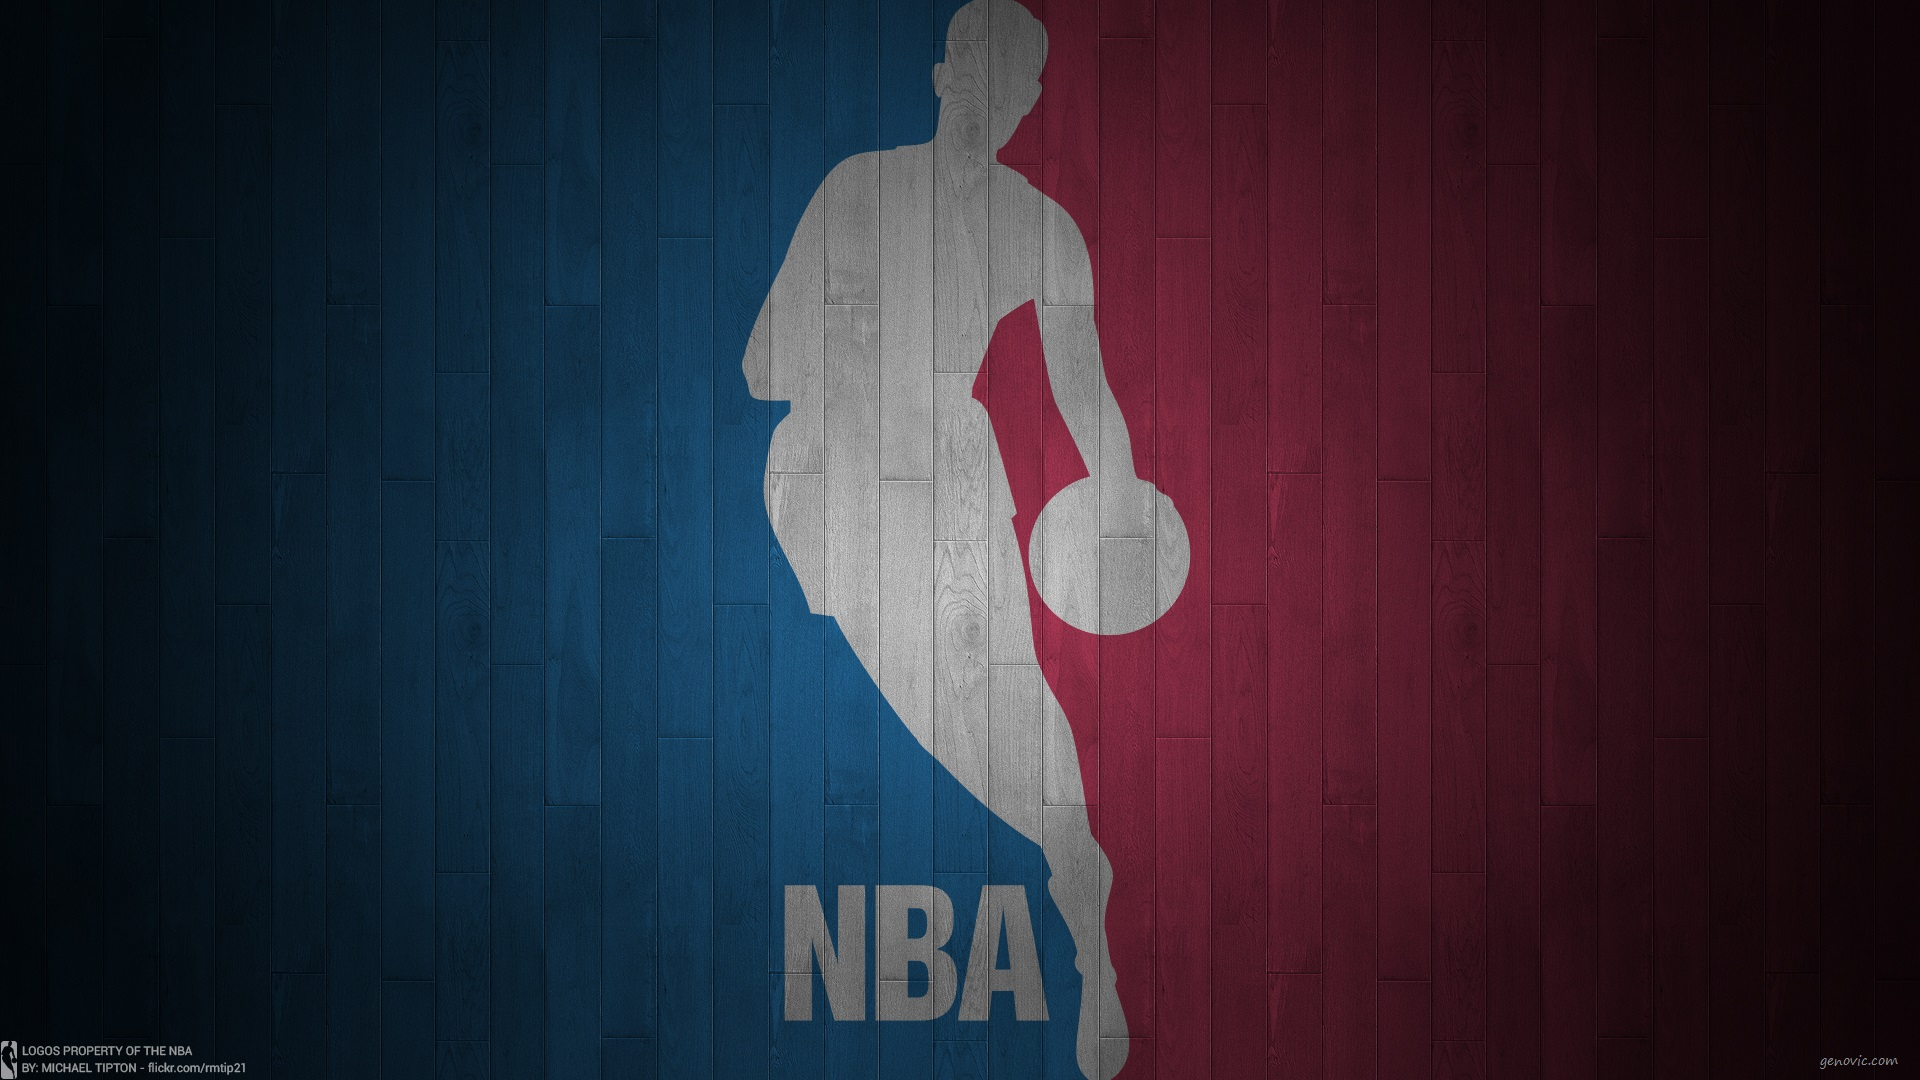 Nba Wallpaper Nba Wallpaper Nba Wallpaper Nba Wallpaper ...